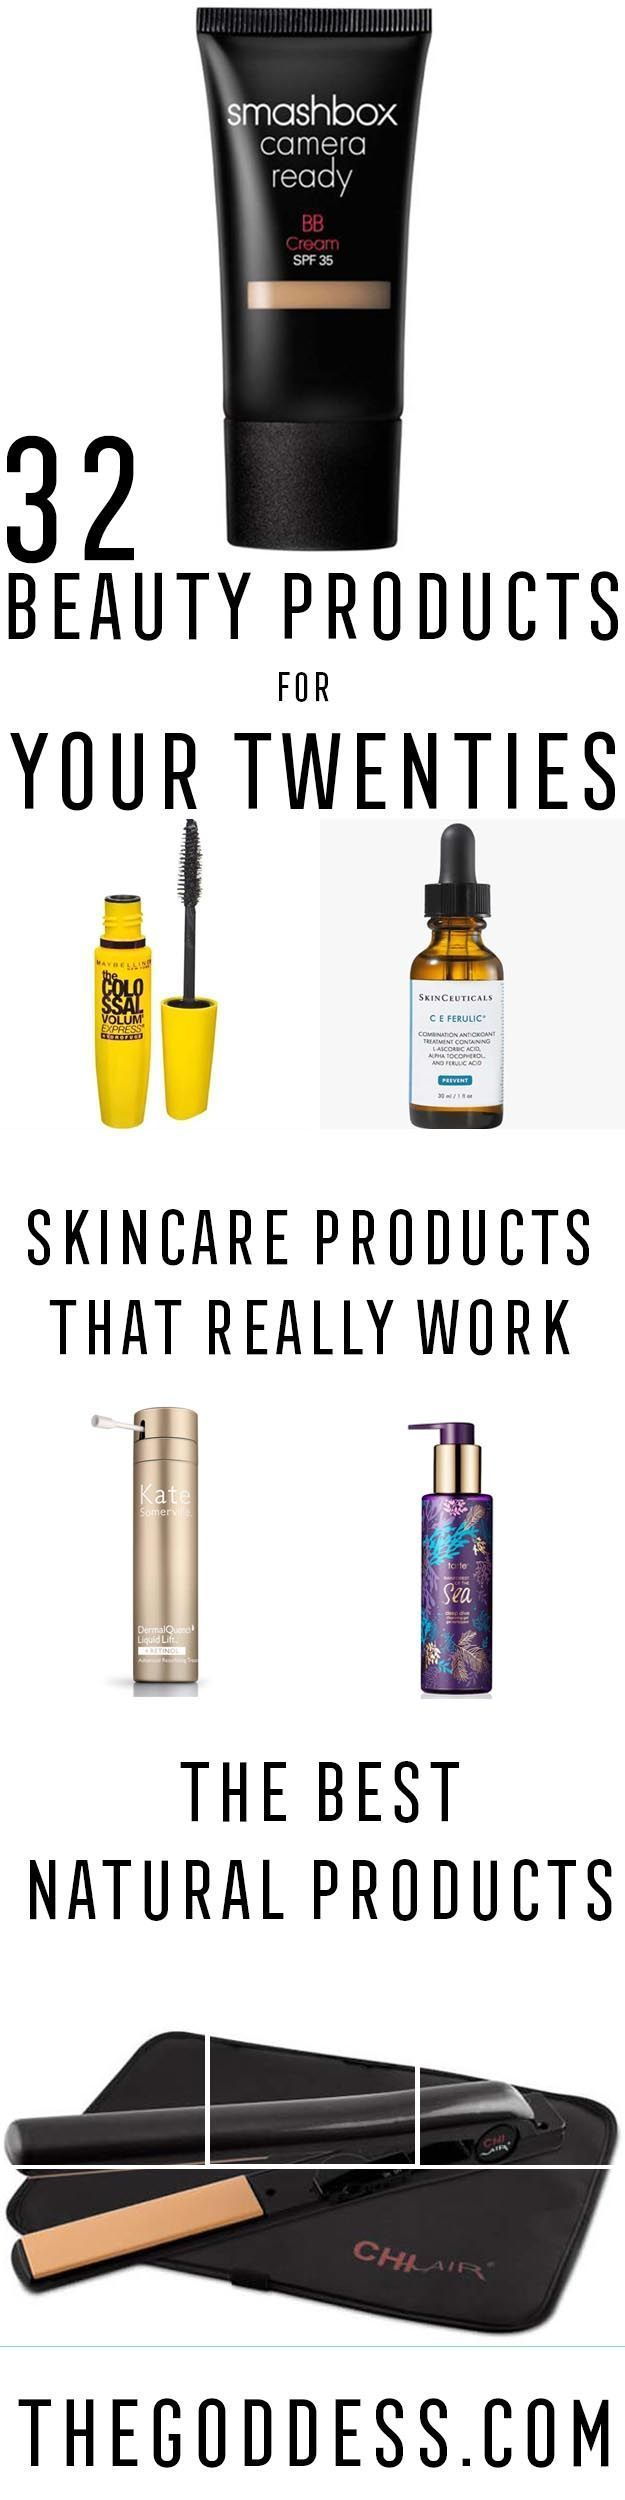 Best Beauty Products For Your 20s - Best Skin-Care Routine For Your 20s and The Best Skin-Care Regimens And Beauty Products You Need To Use In Your 20s. Anti Aging Routines and Exactly How To Take Care Of Your Skin In Your Twenties. We Cover Dermatologist Recommended Skin Care Routines And The Best Eye Creams For Your Early 20s. https://thegoddess.com/beauty-products-for-your-20s